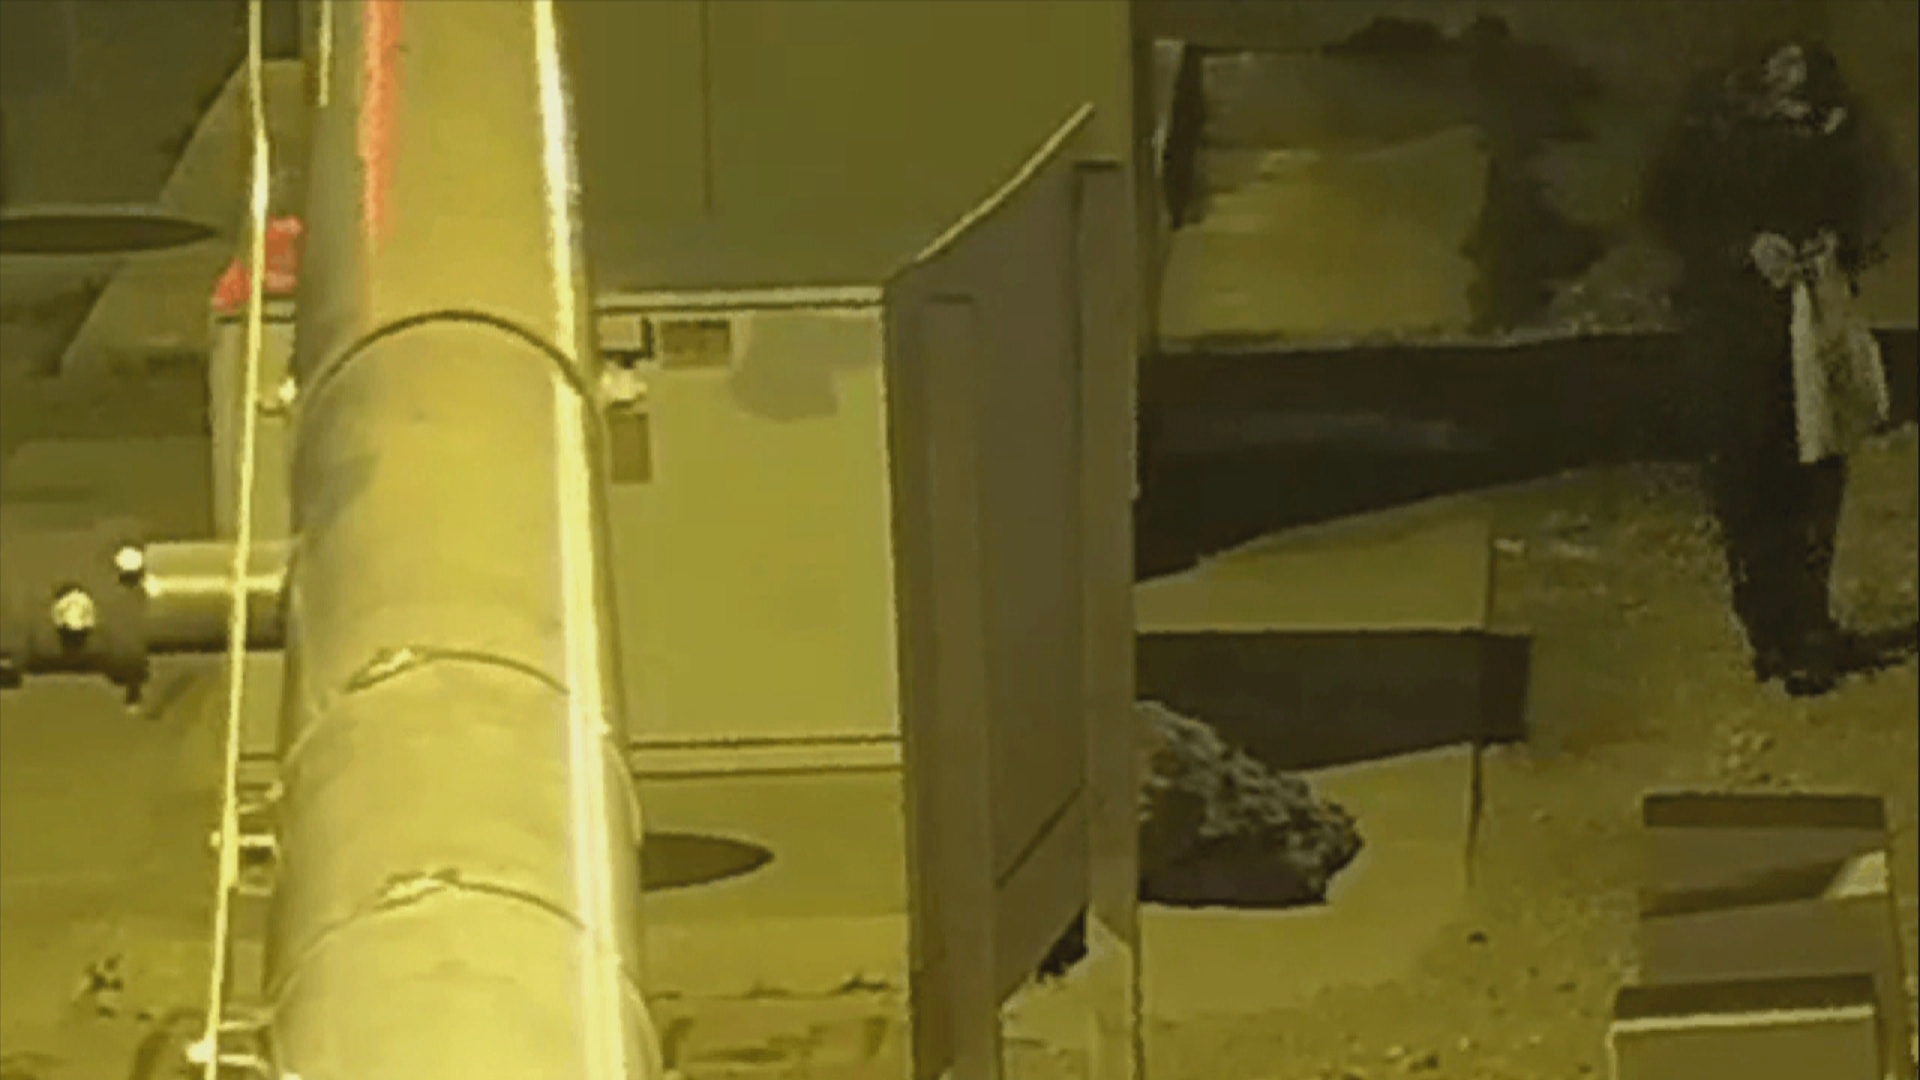 Grand jury evidence presented in the case against Shane Schindler shows surveillance video taken on the morning of Wednesday, Feb. 22, 2017, near downtown Las Vegas. (Clark County grand jury evidence)